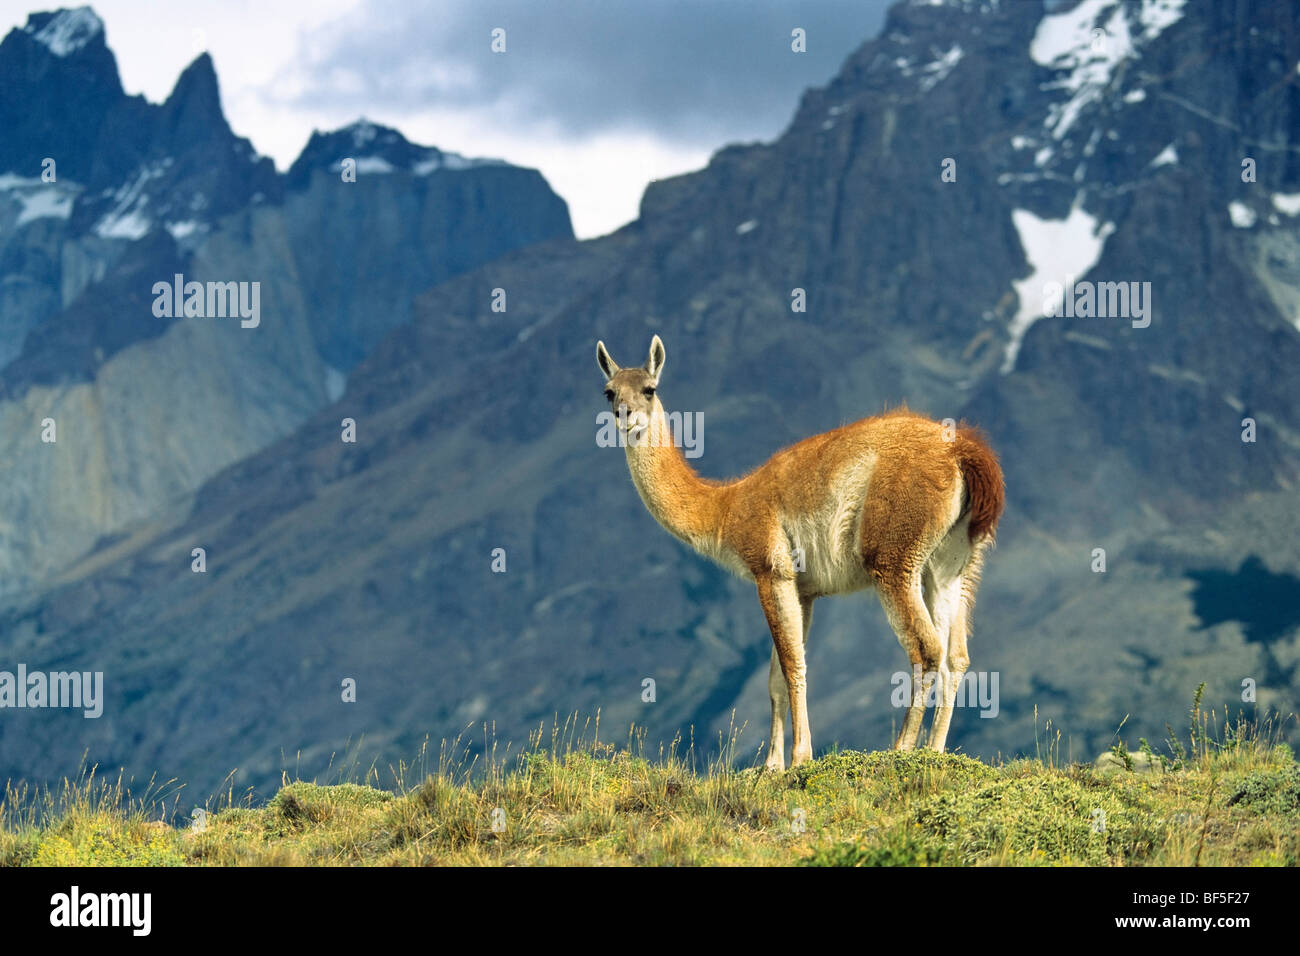 Guanaco (Lama guanicoe), with Cuernos del Paine, Paine mountains, Torres del Paine National Park, Patagonia, Chile - Stock Image